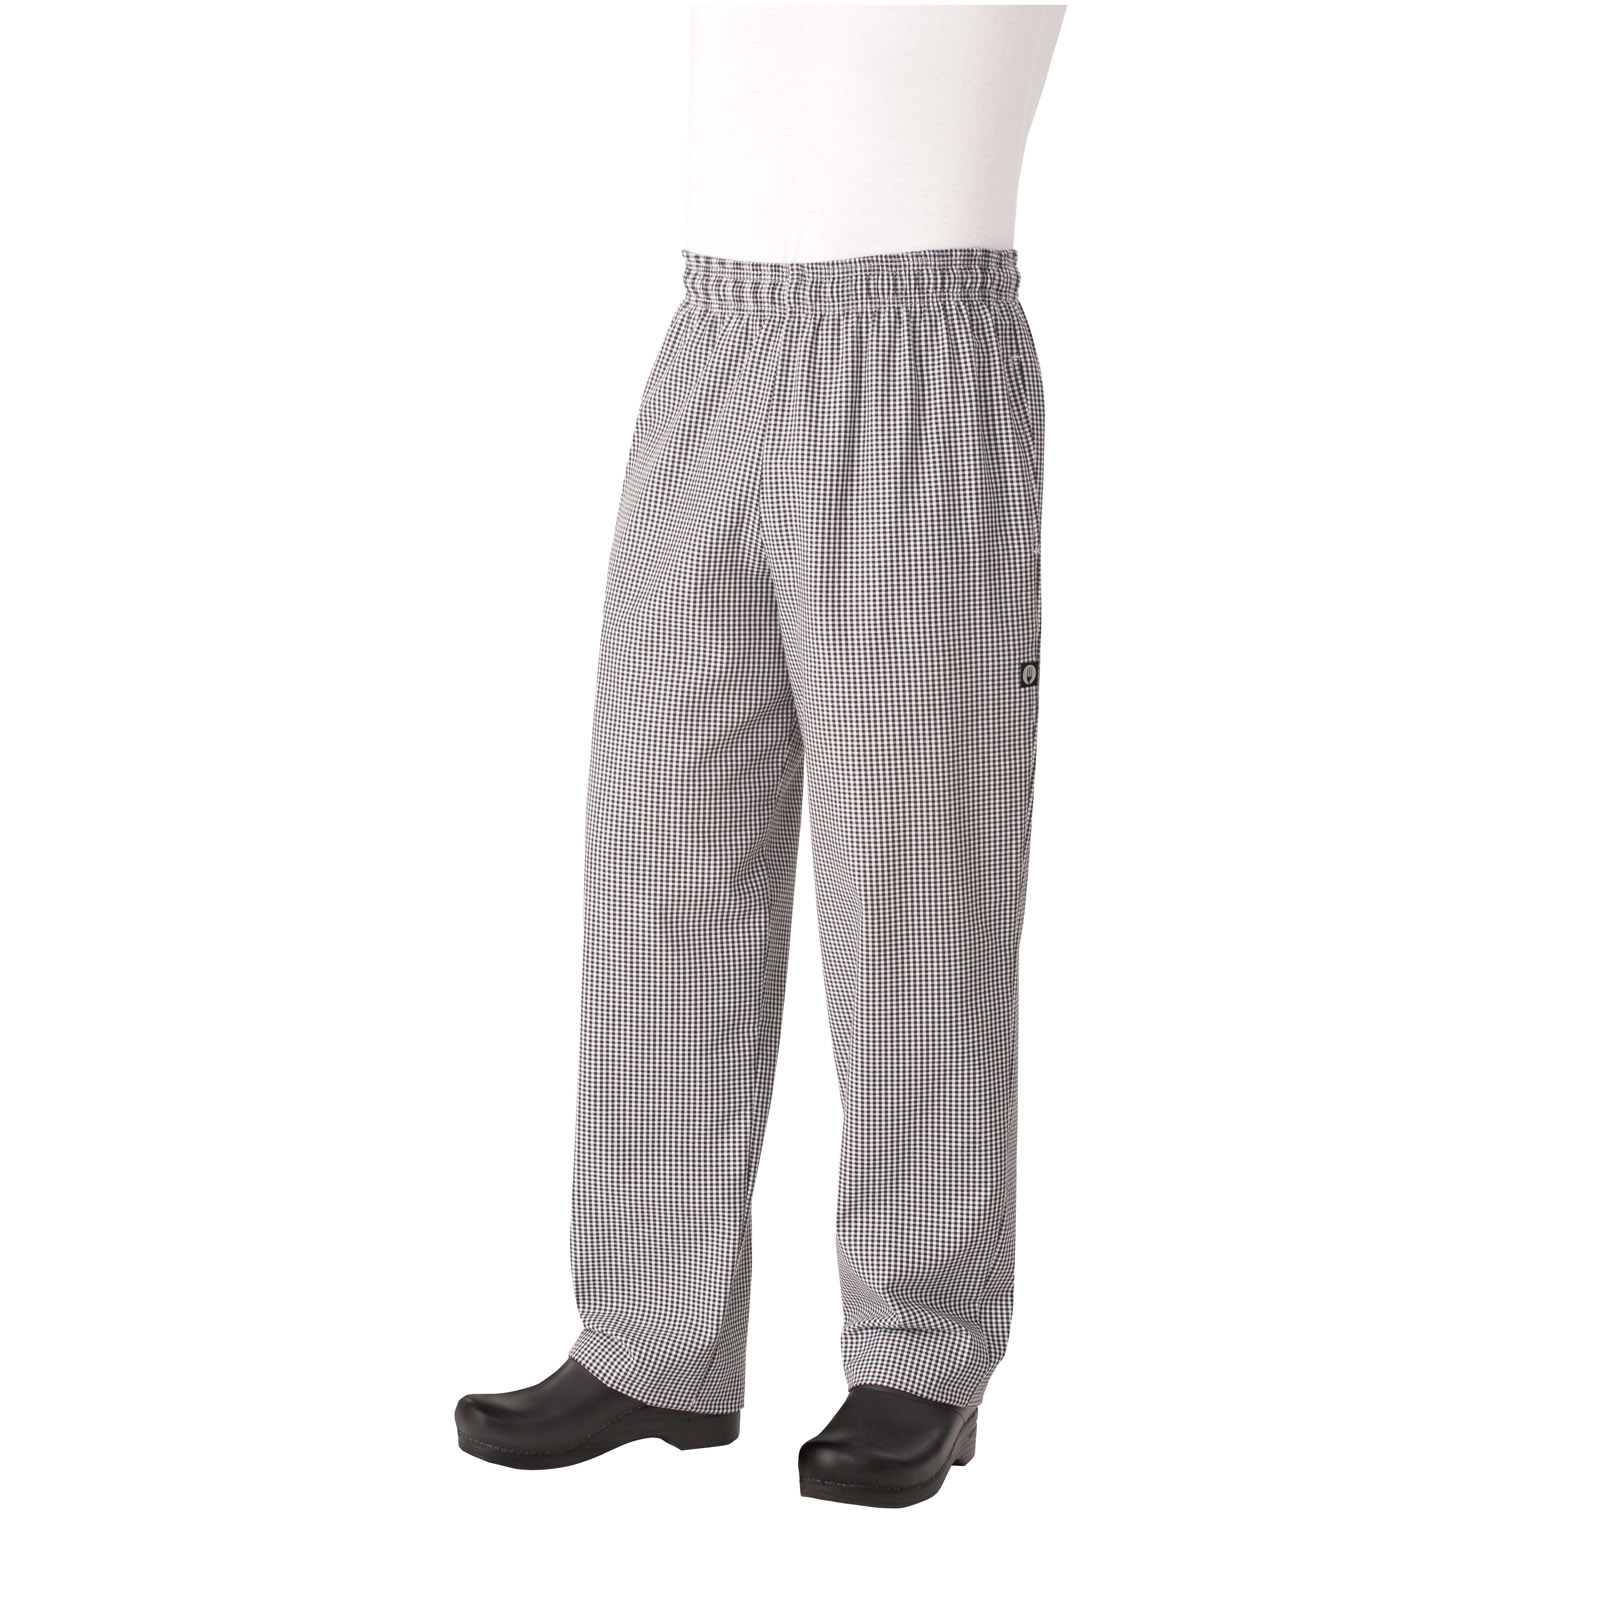 Chef Works NBCP000XXS chef's pants